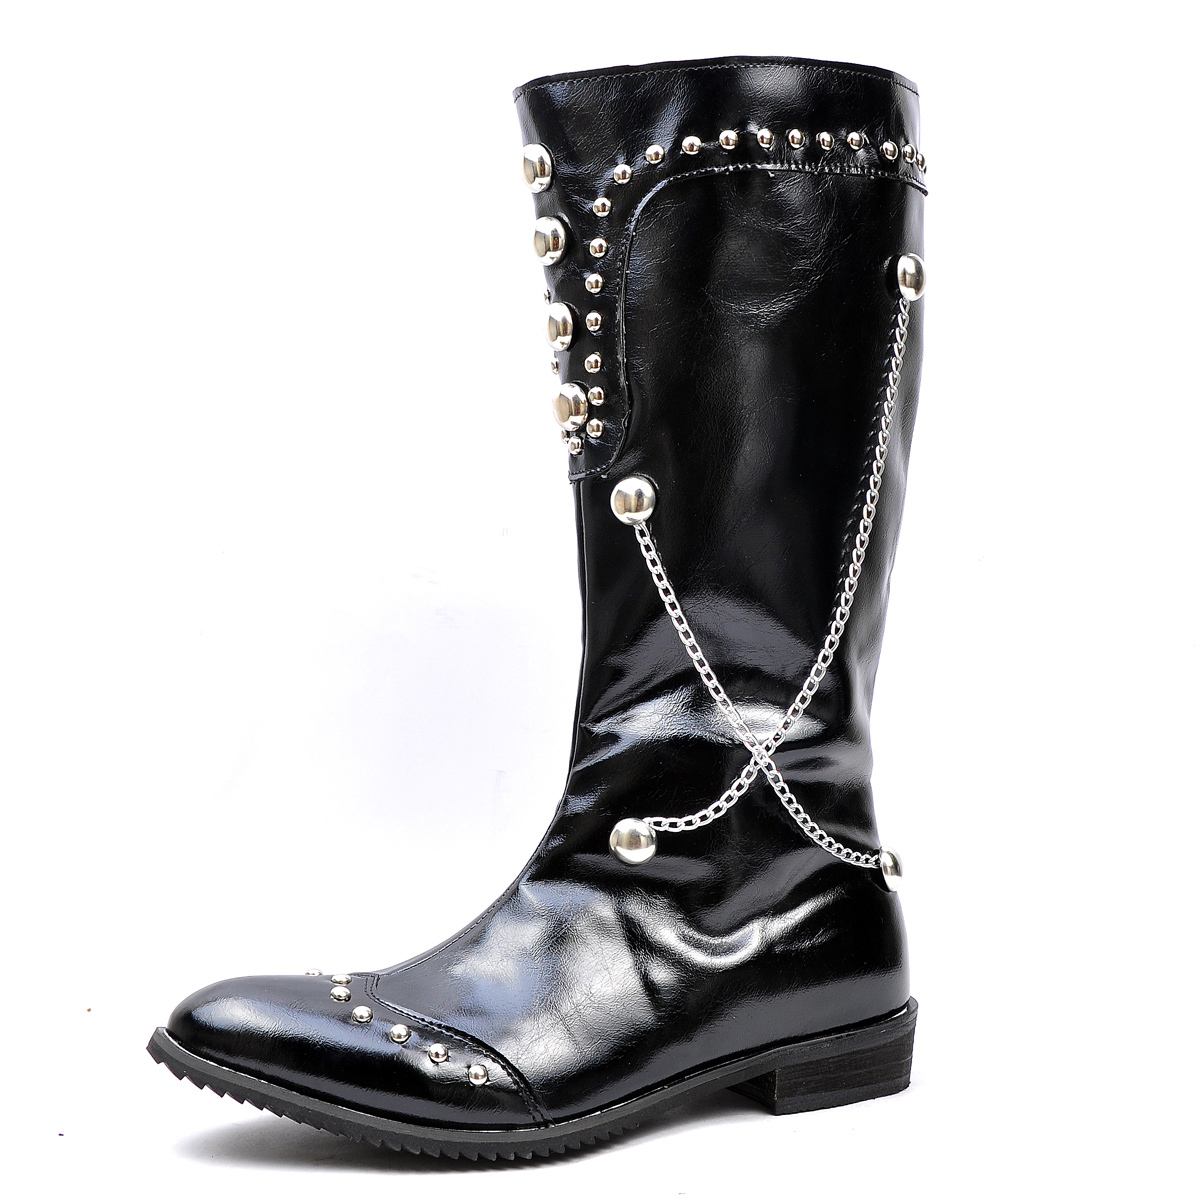 black s shoes knee high boots rivets chains side